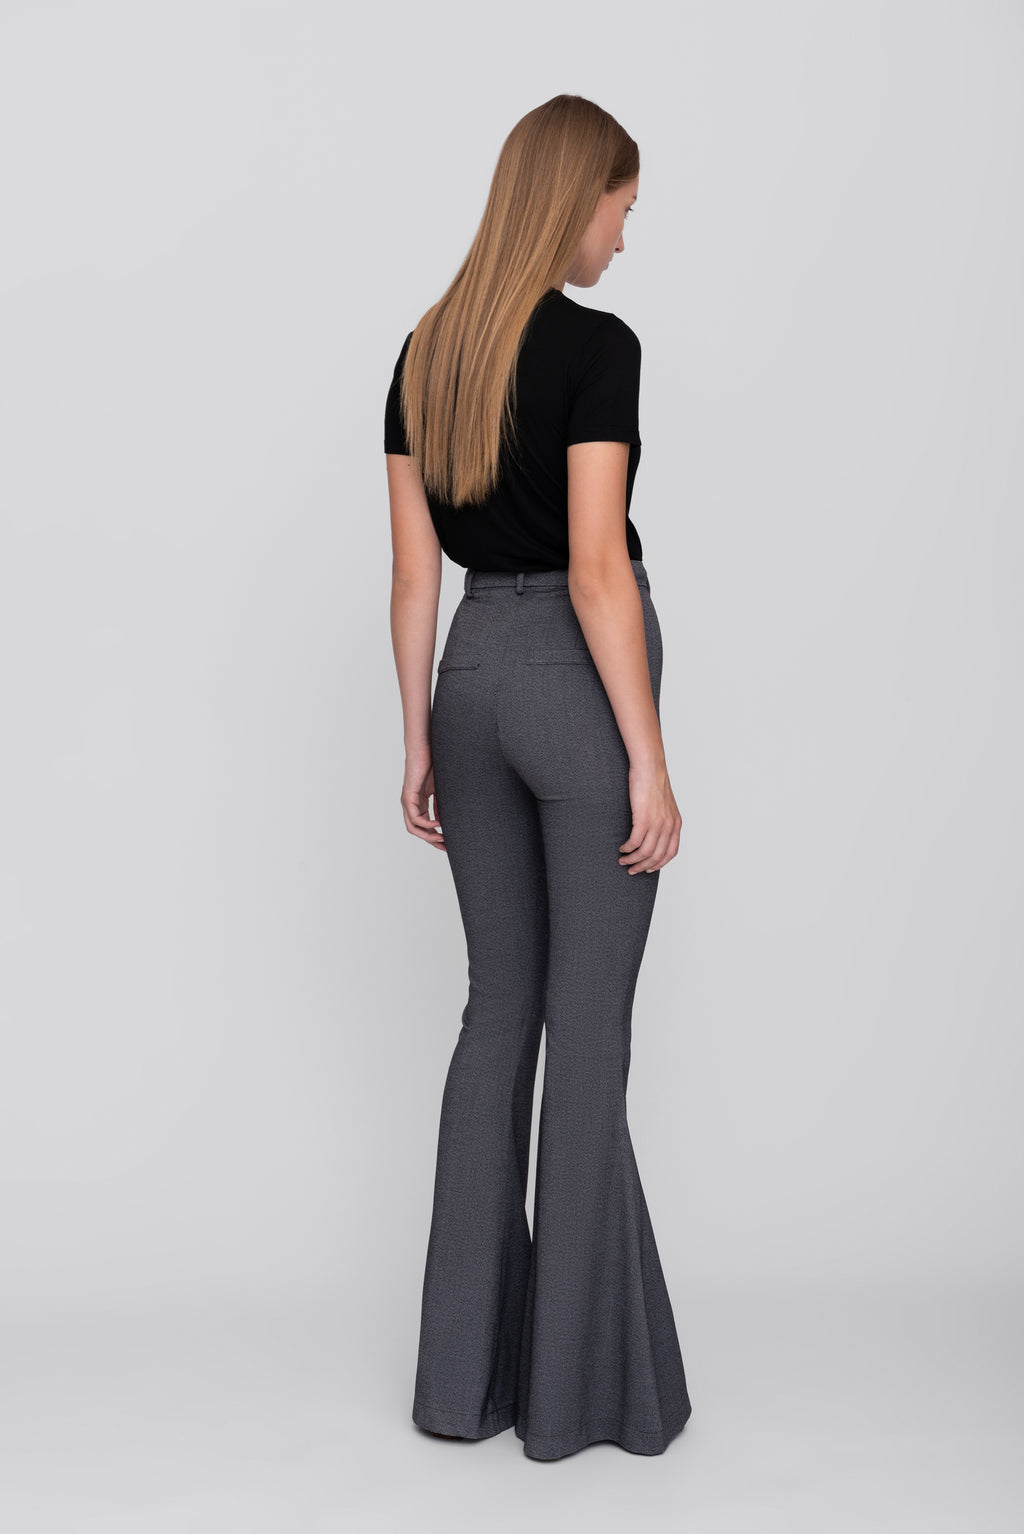 The Salt & Pepper Bianca Pants